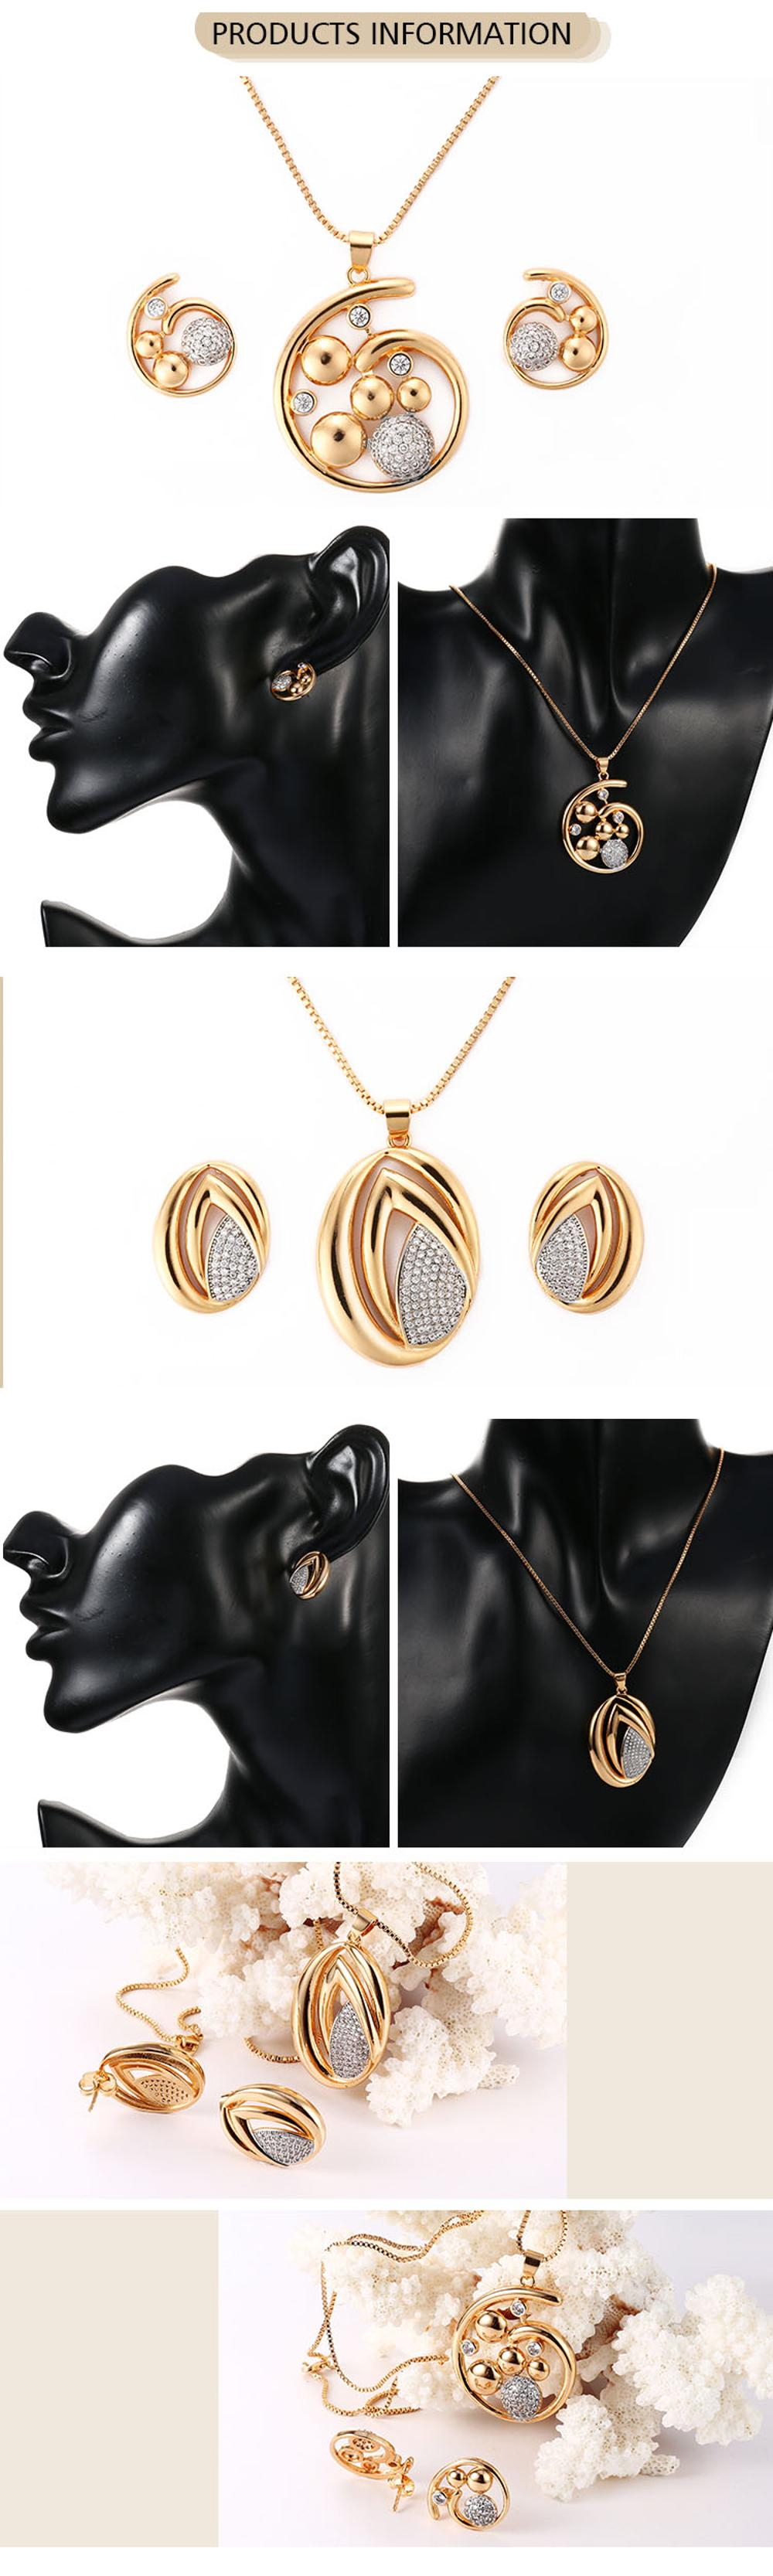 2018 Trending Products Ladies 18K Gold Plated Zircon Gold Jewelry Set